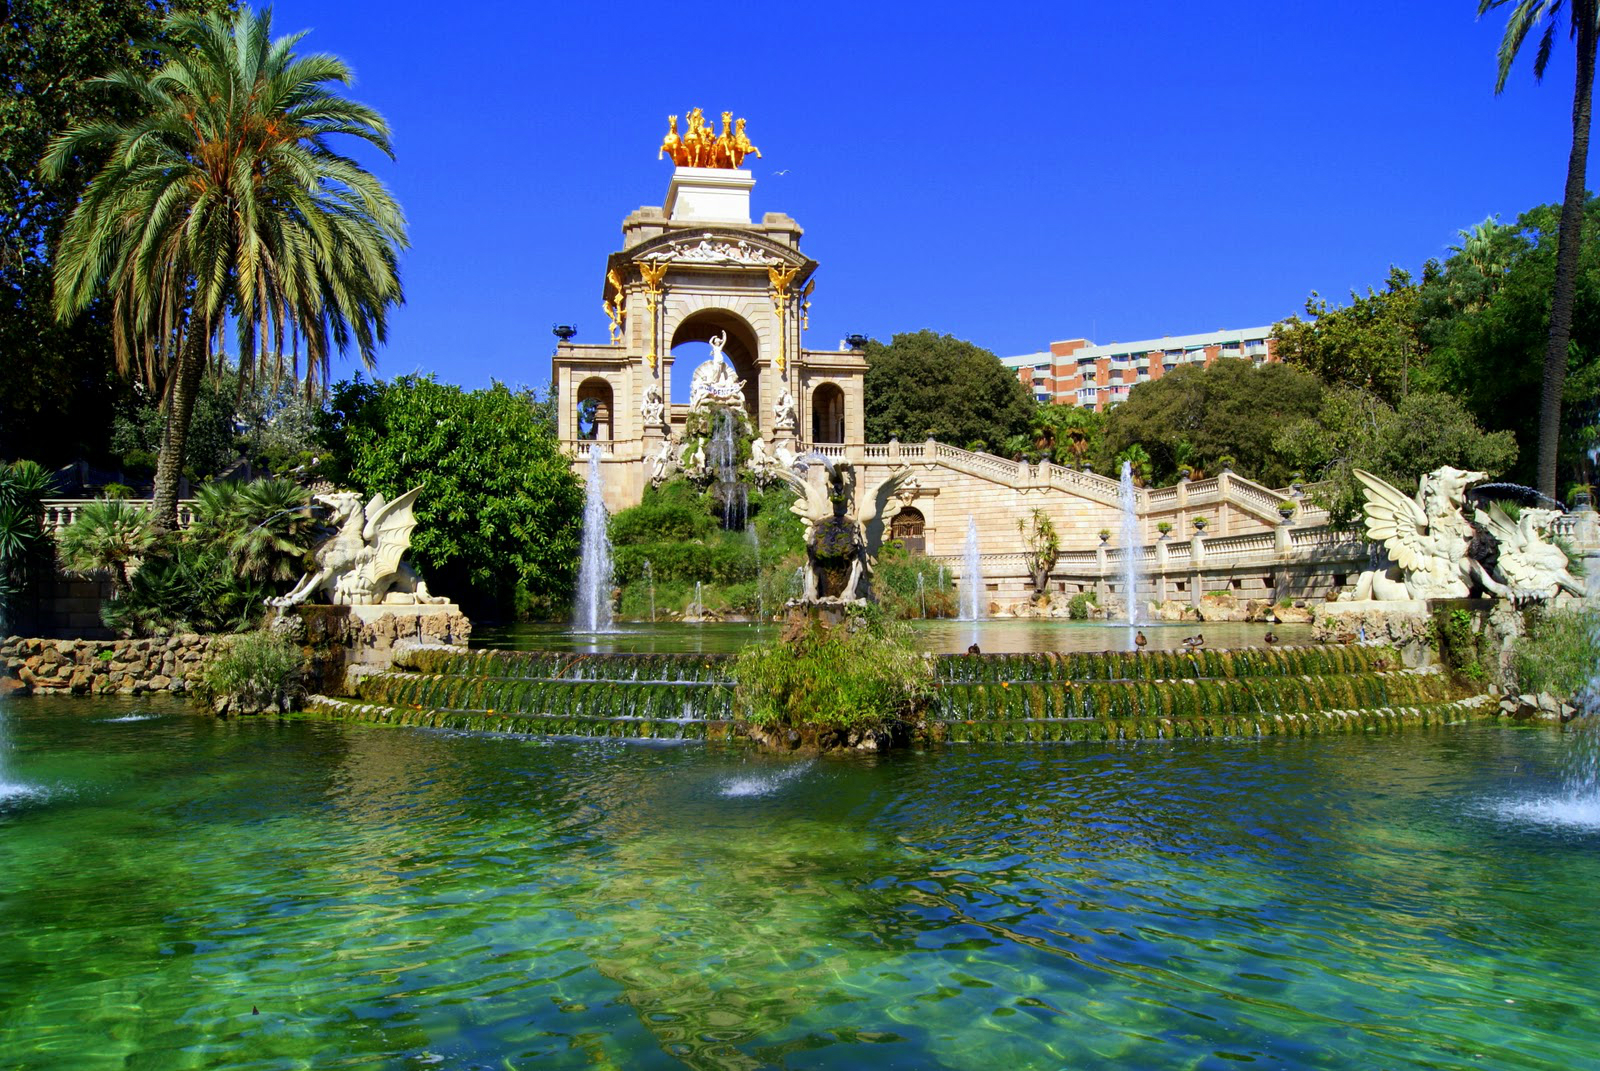 Park Ciutadella amazing view feature